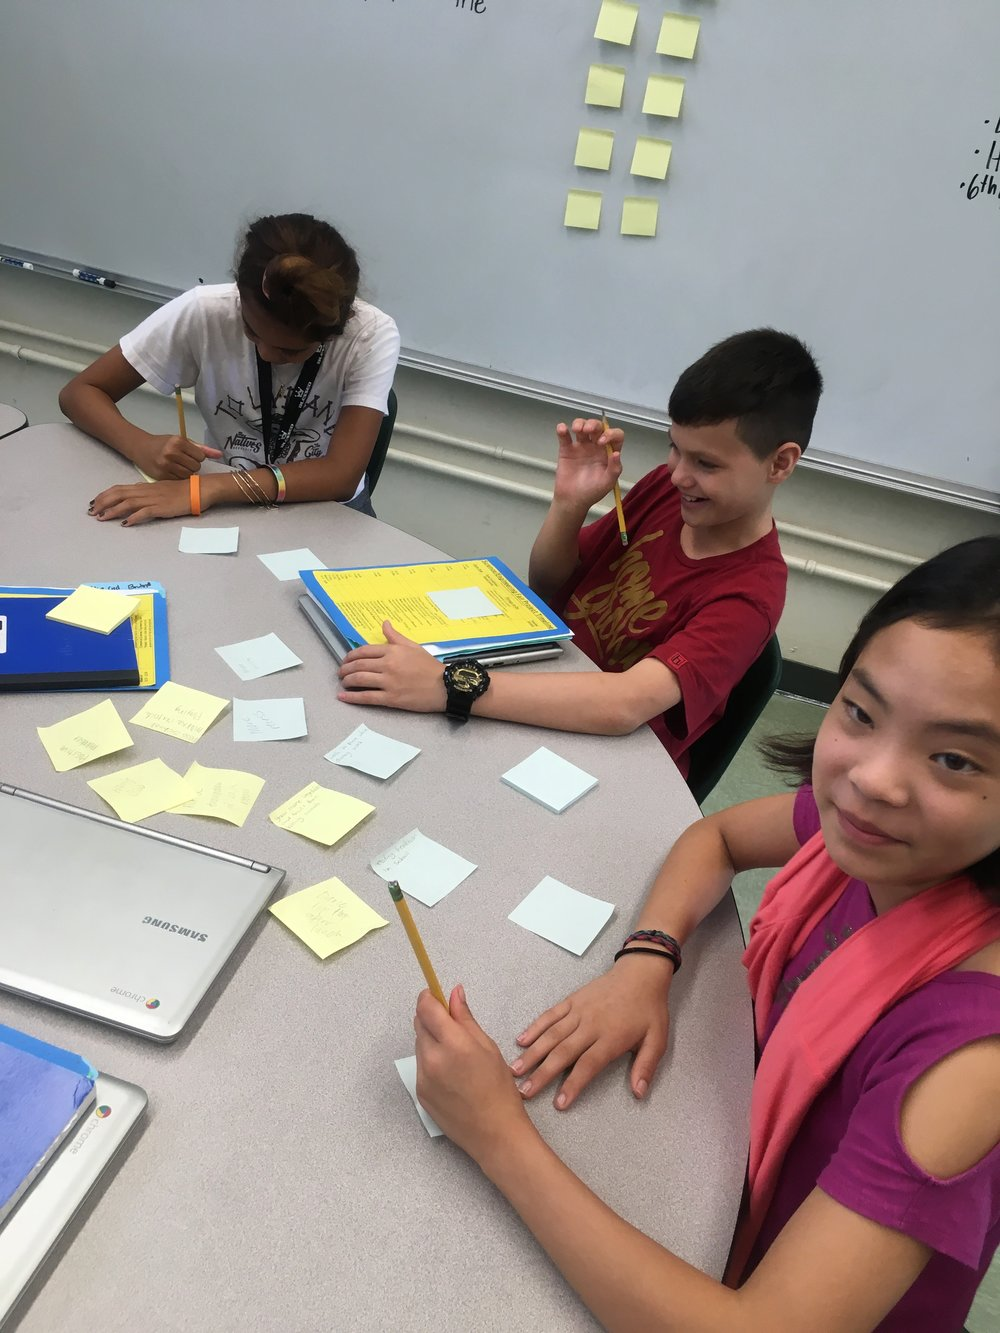 """Kāneʻohe Elementary School haumana brainstorming on a Blue Zones design sprint - """"How might we make the healthy choice the easy choice?"""" Every school should explore how to promote healthy living and being!"""